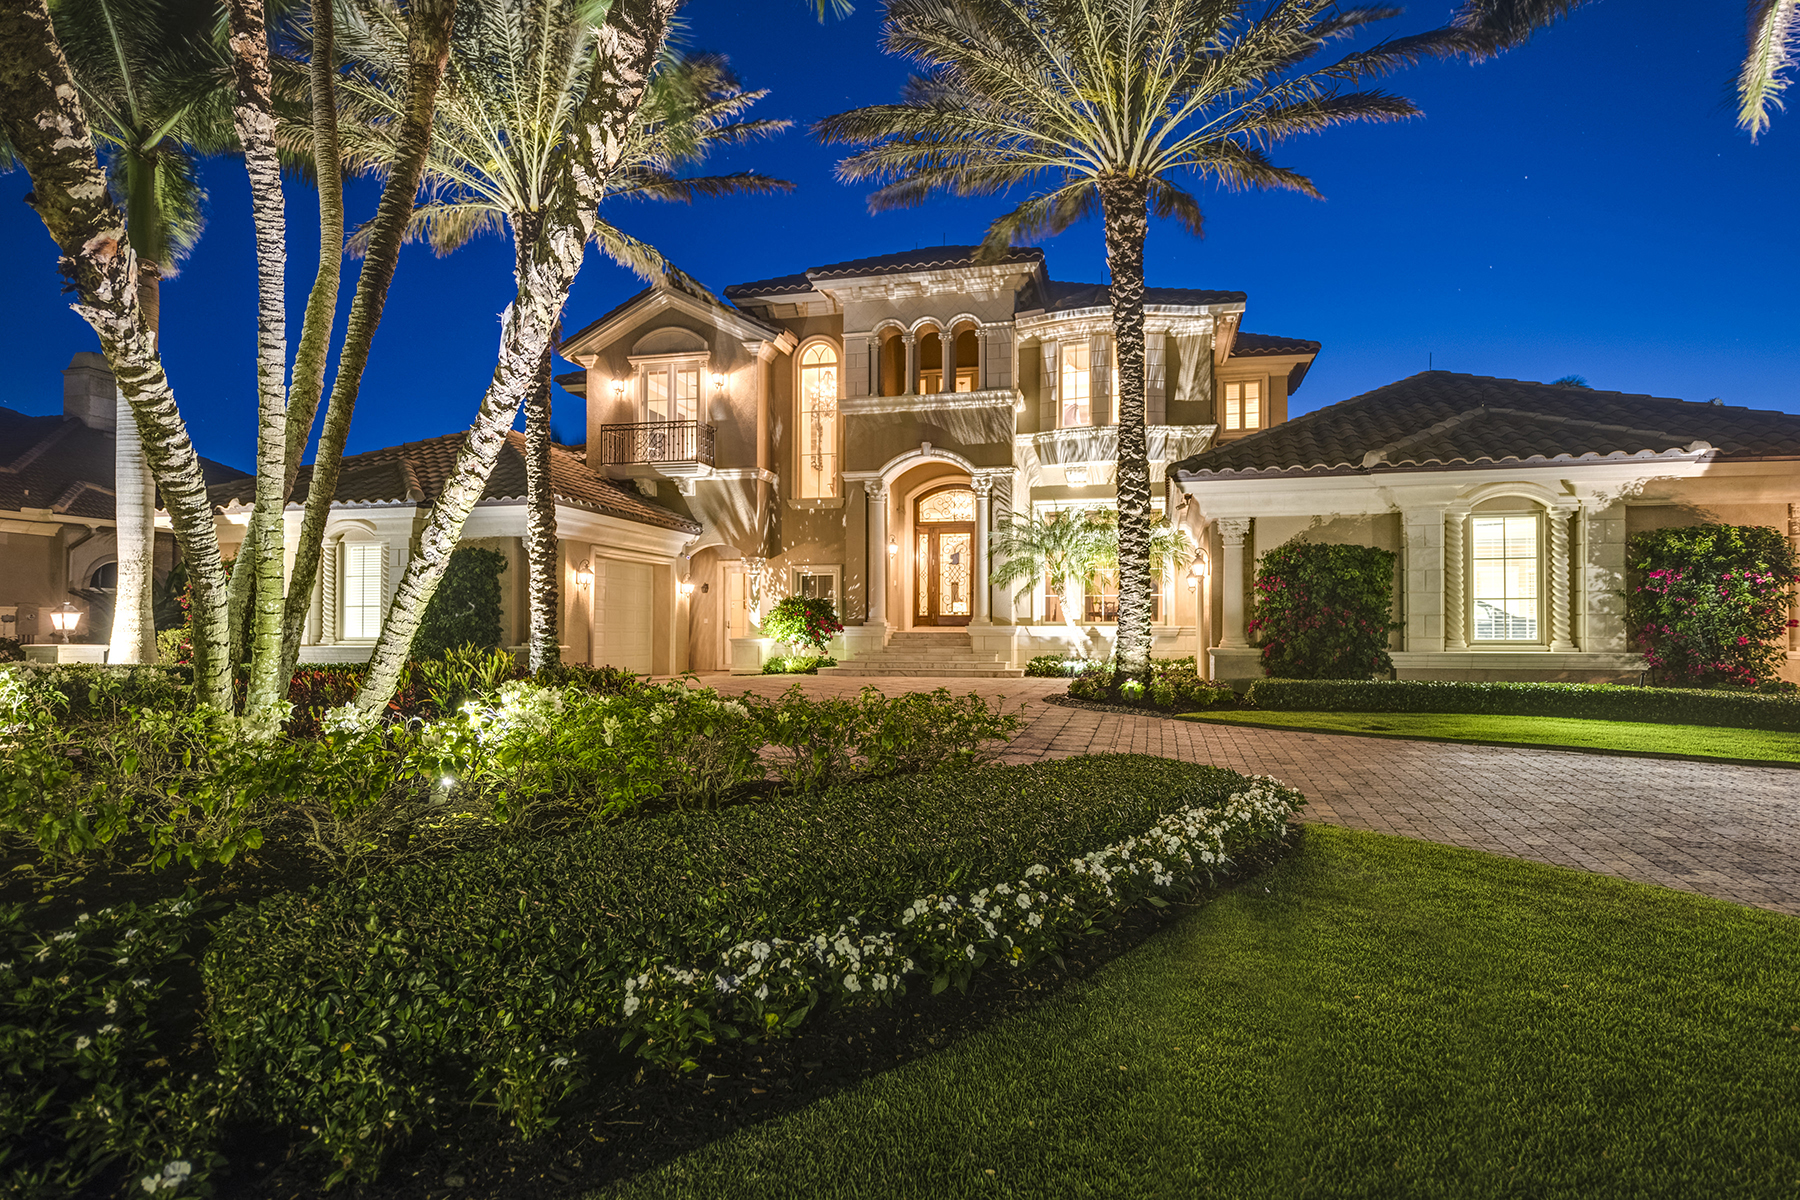 Single Family Homes için Satış at WEST BAY CLUB - LAUREL OAKS AT WEST BAY CLUB 22070 Red Laurel Lane, Estero, Florida 33928 Amerika Birleşik Devletleri